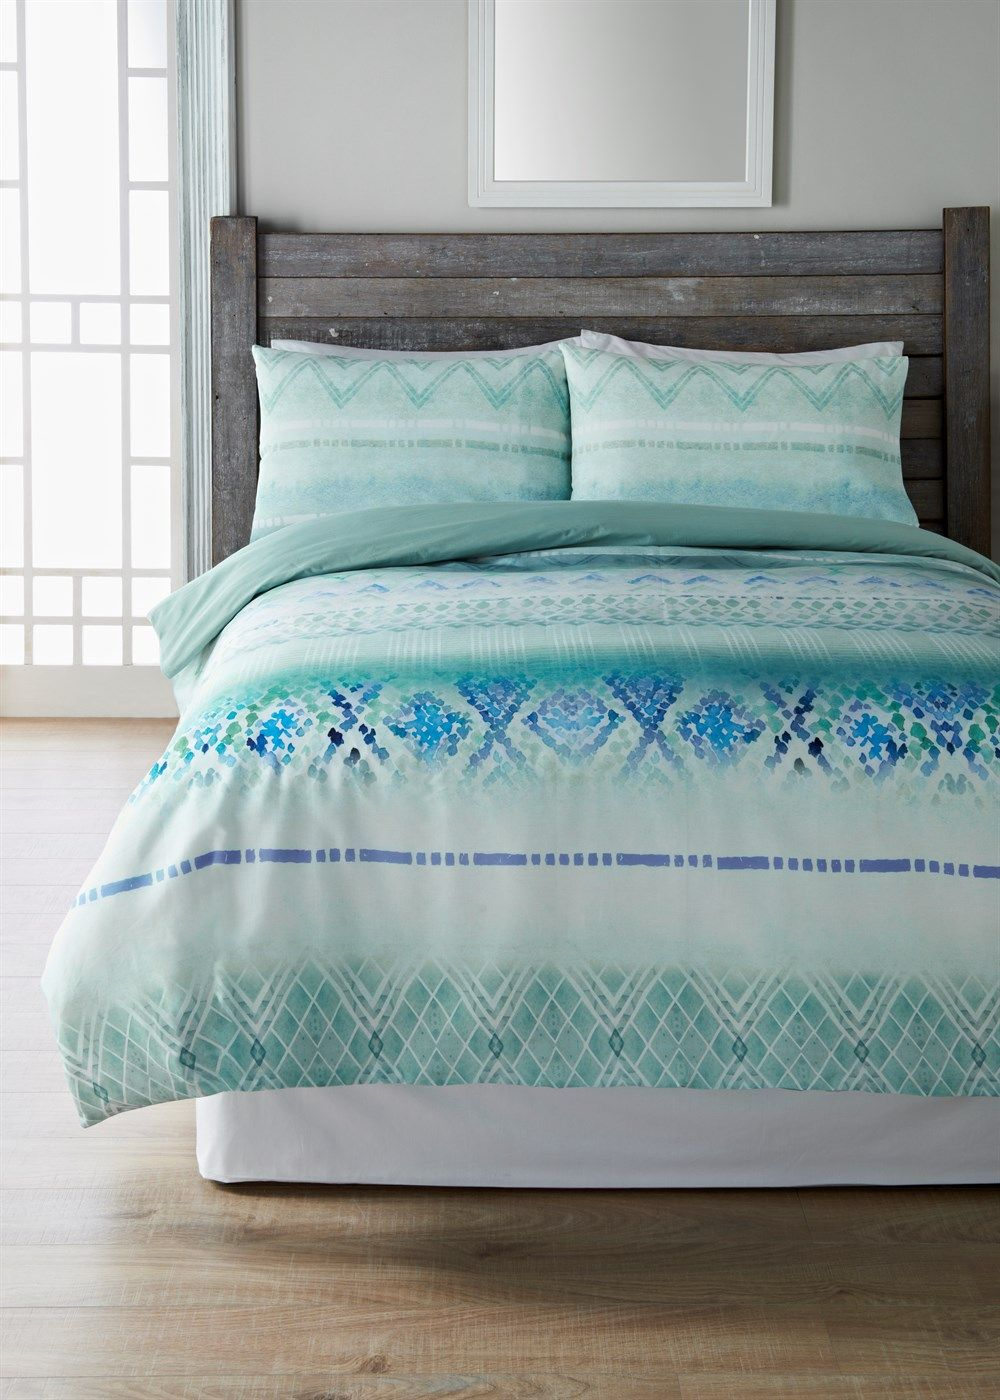 bed cute size pattern teens bedding cover tribal sheets for comforter boho covers luxury style duvet aztec duvets full